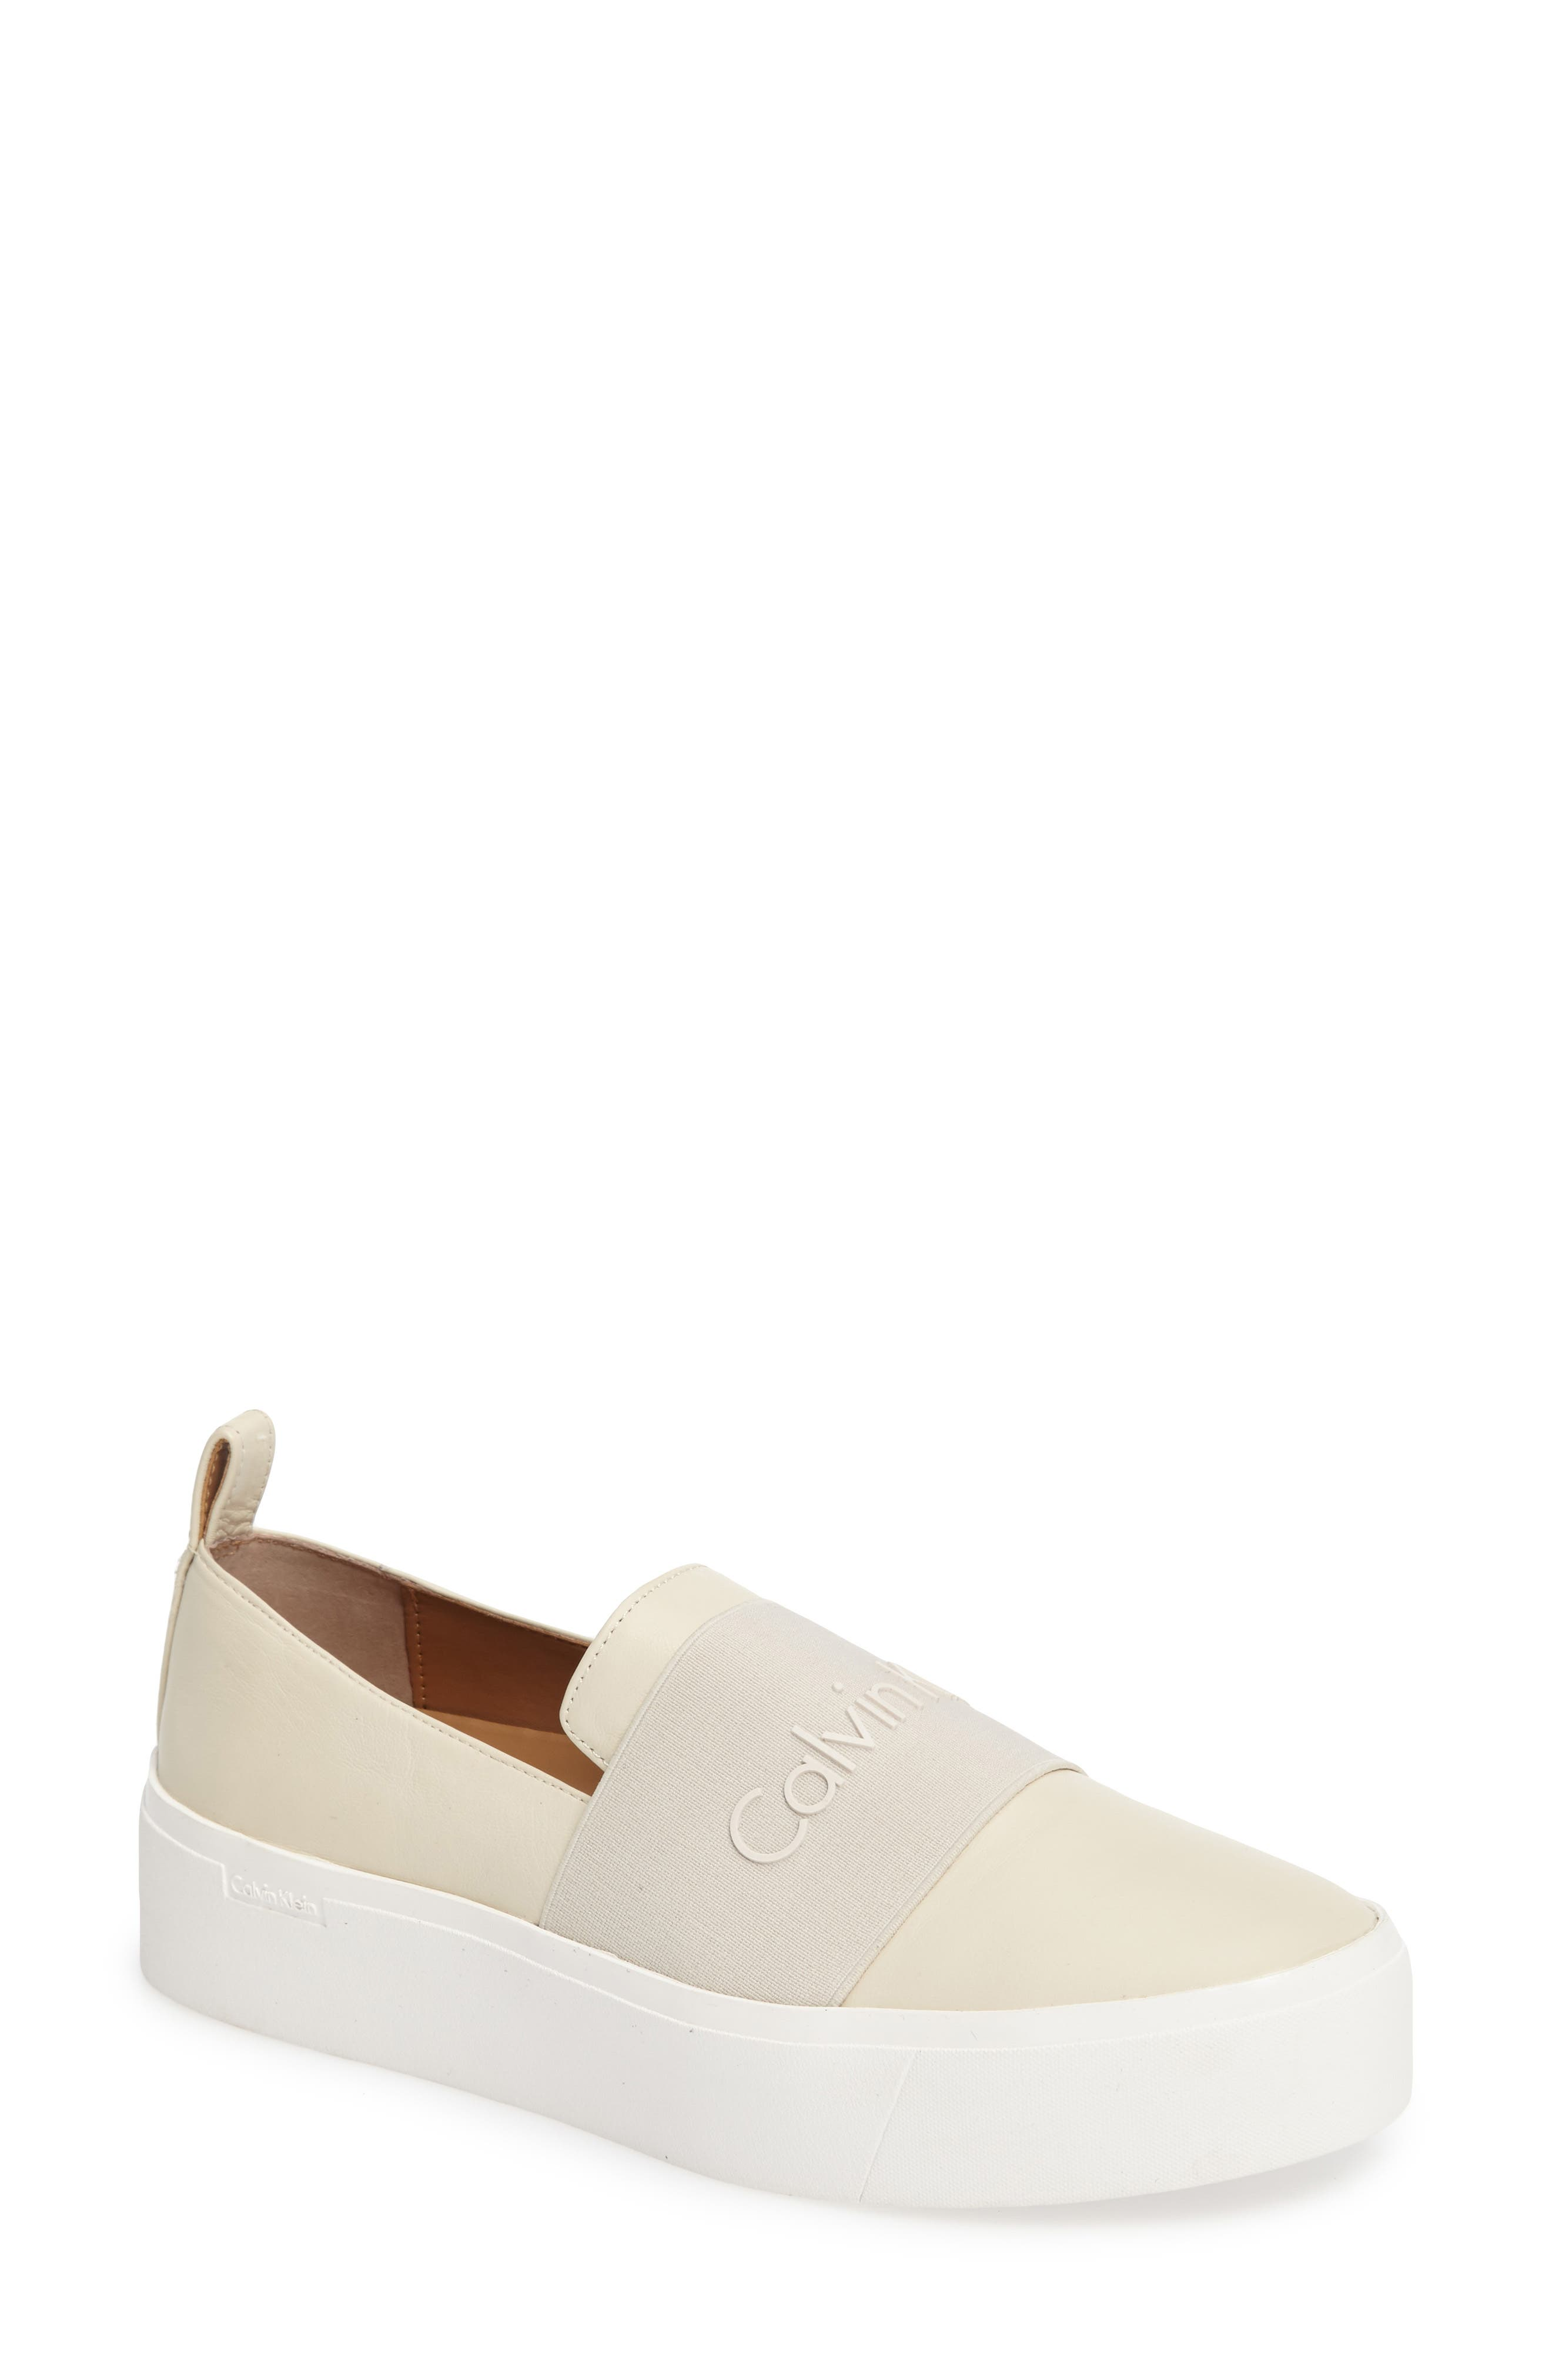 Jacinta Platform Sneaker,                             Main thumbnail 1, color,                             Soft White Leather